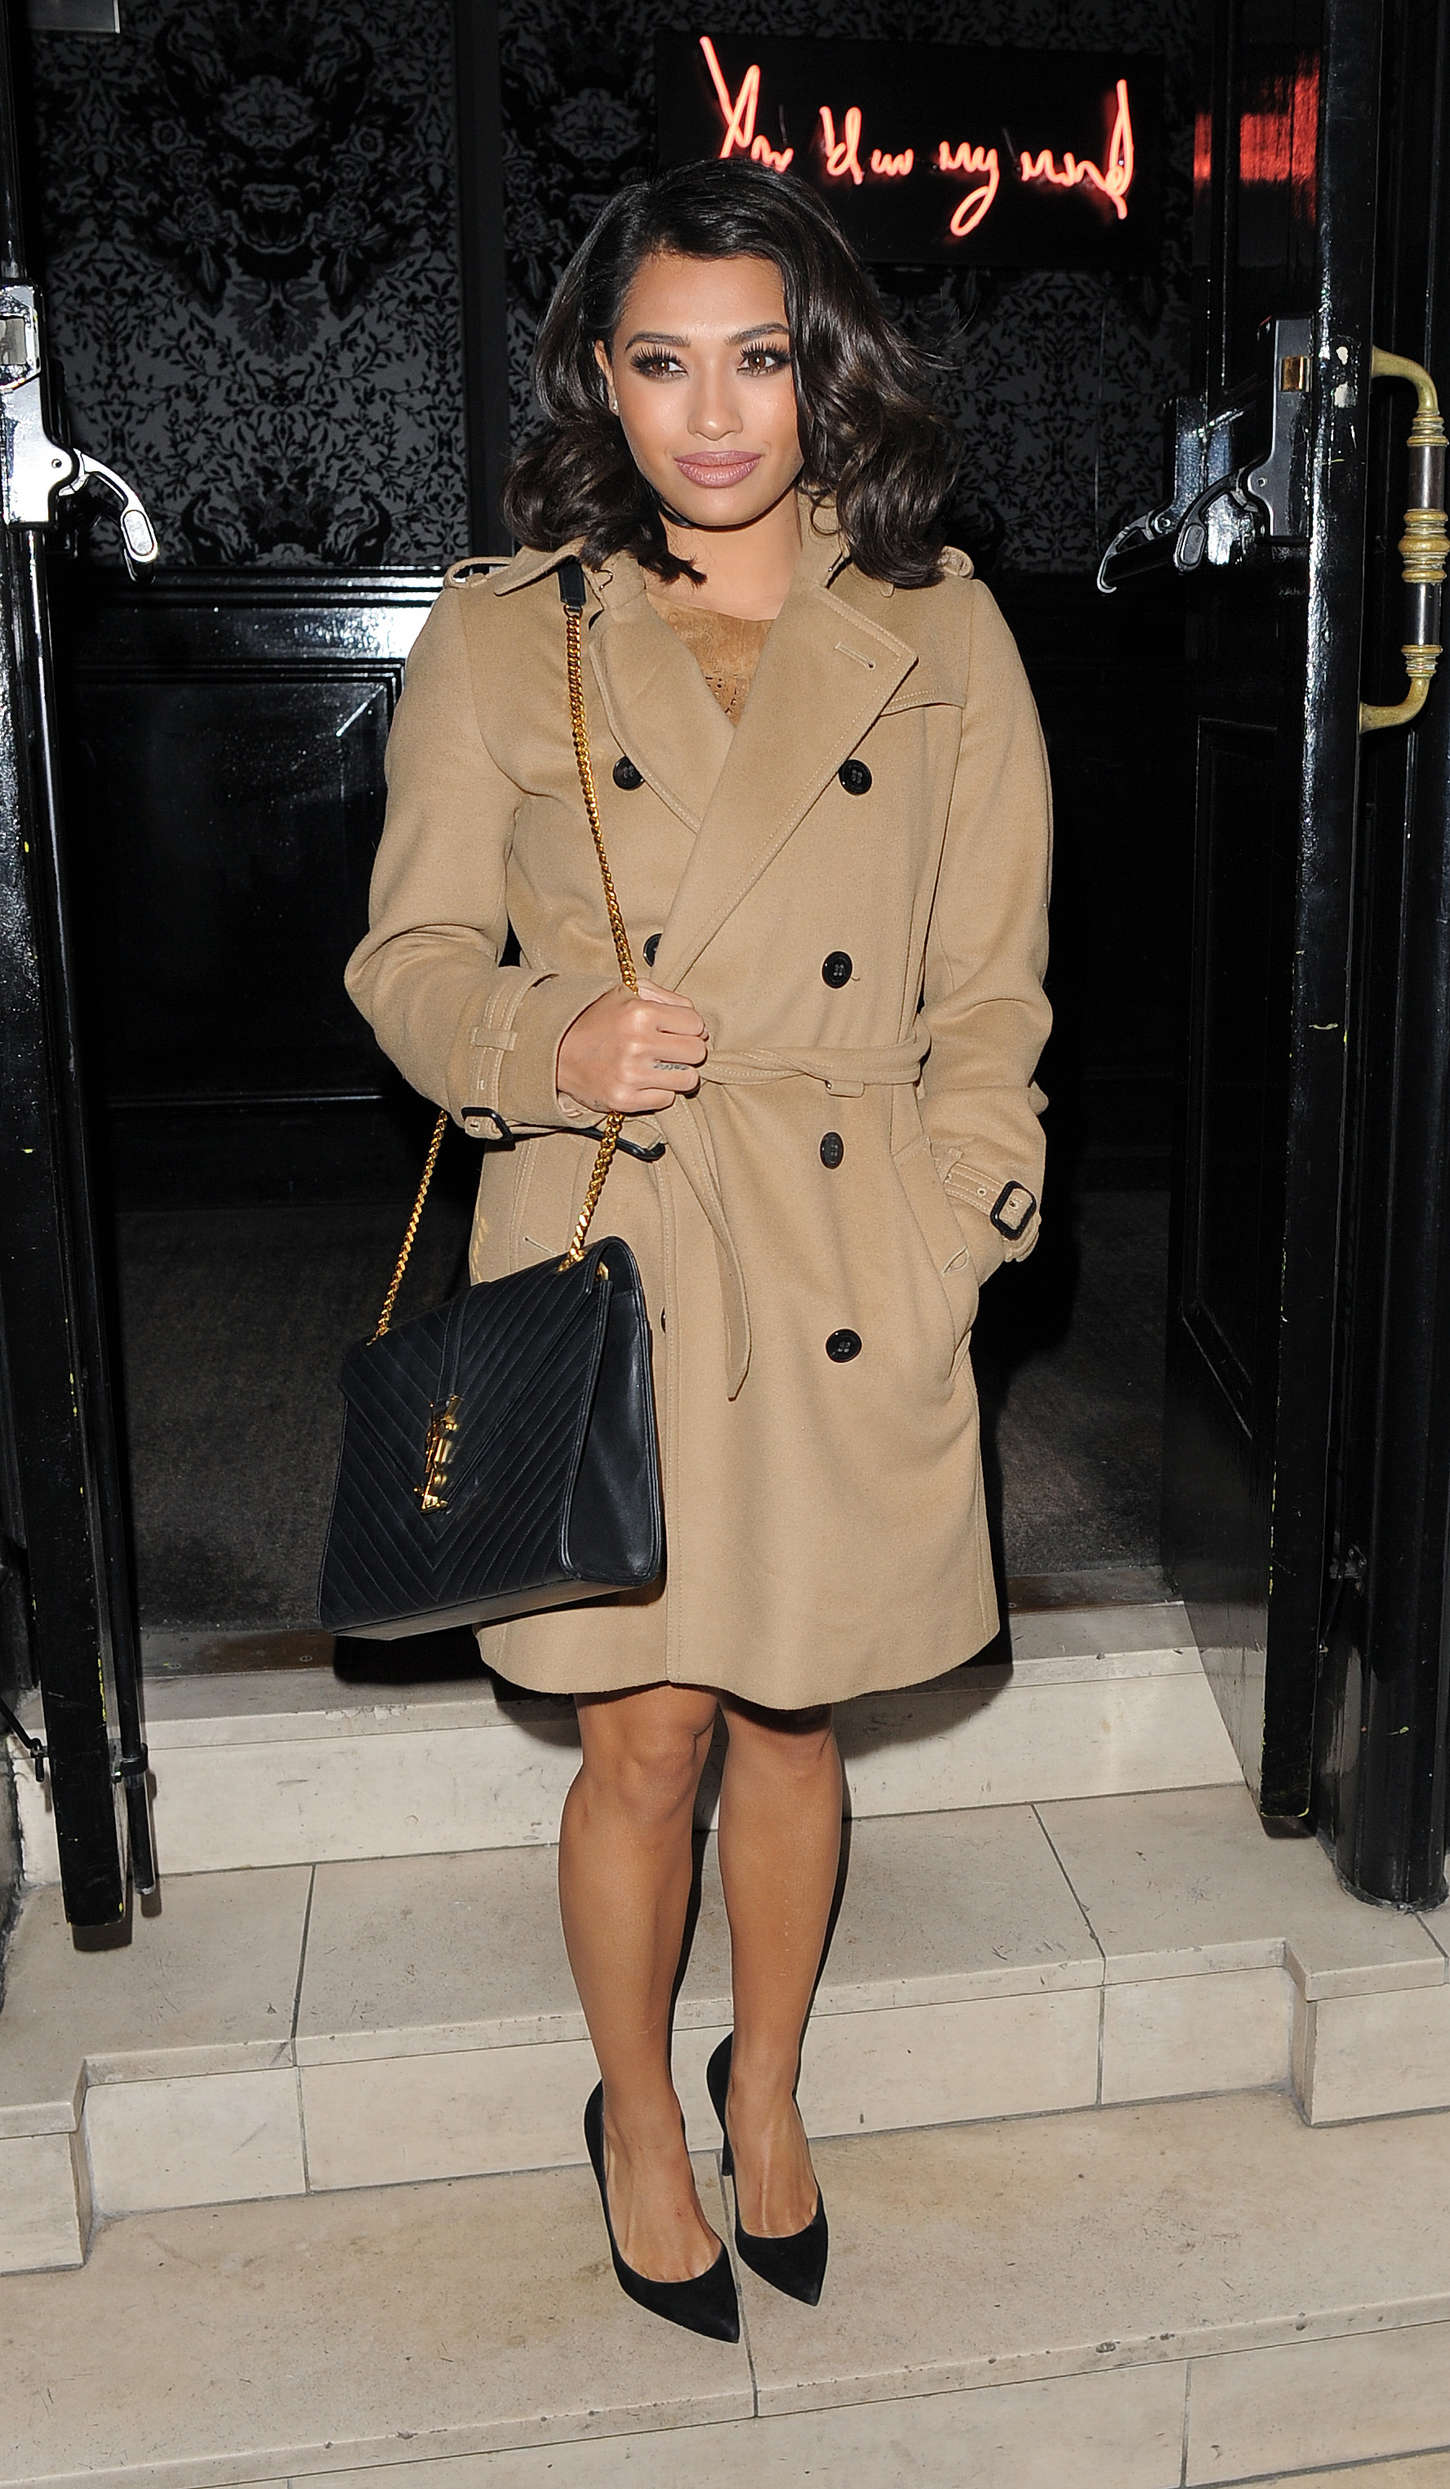 Vanessa White Millie Mackintosh SS15 Collection Dinner in London